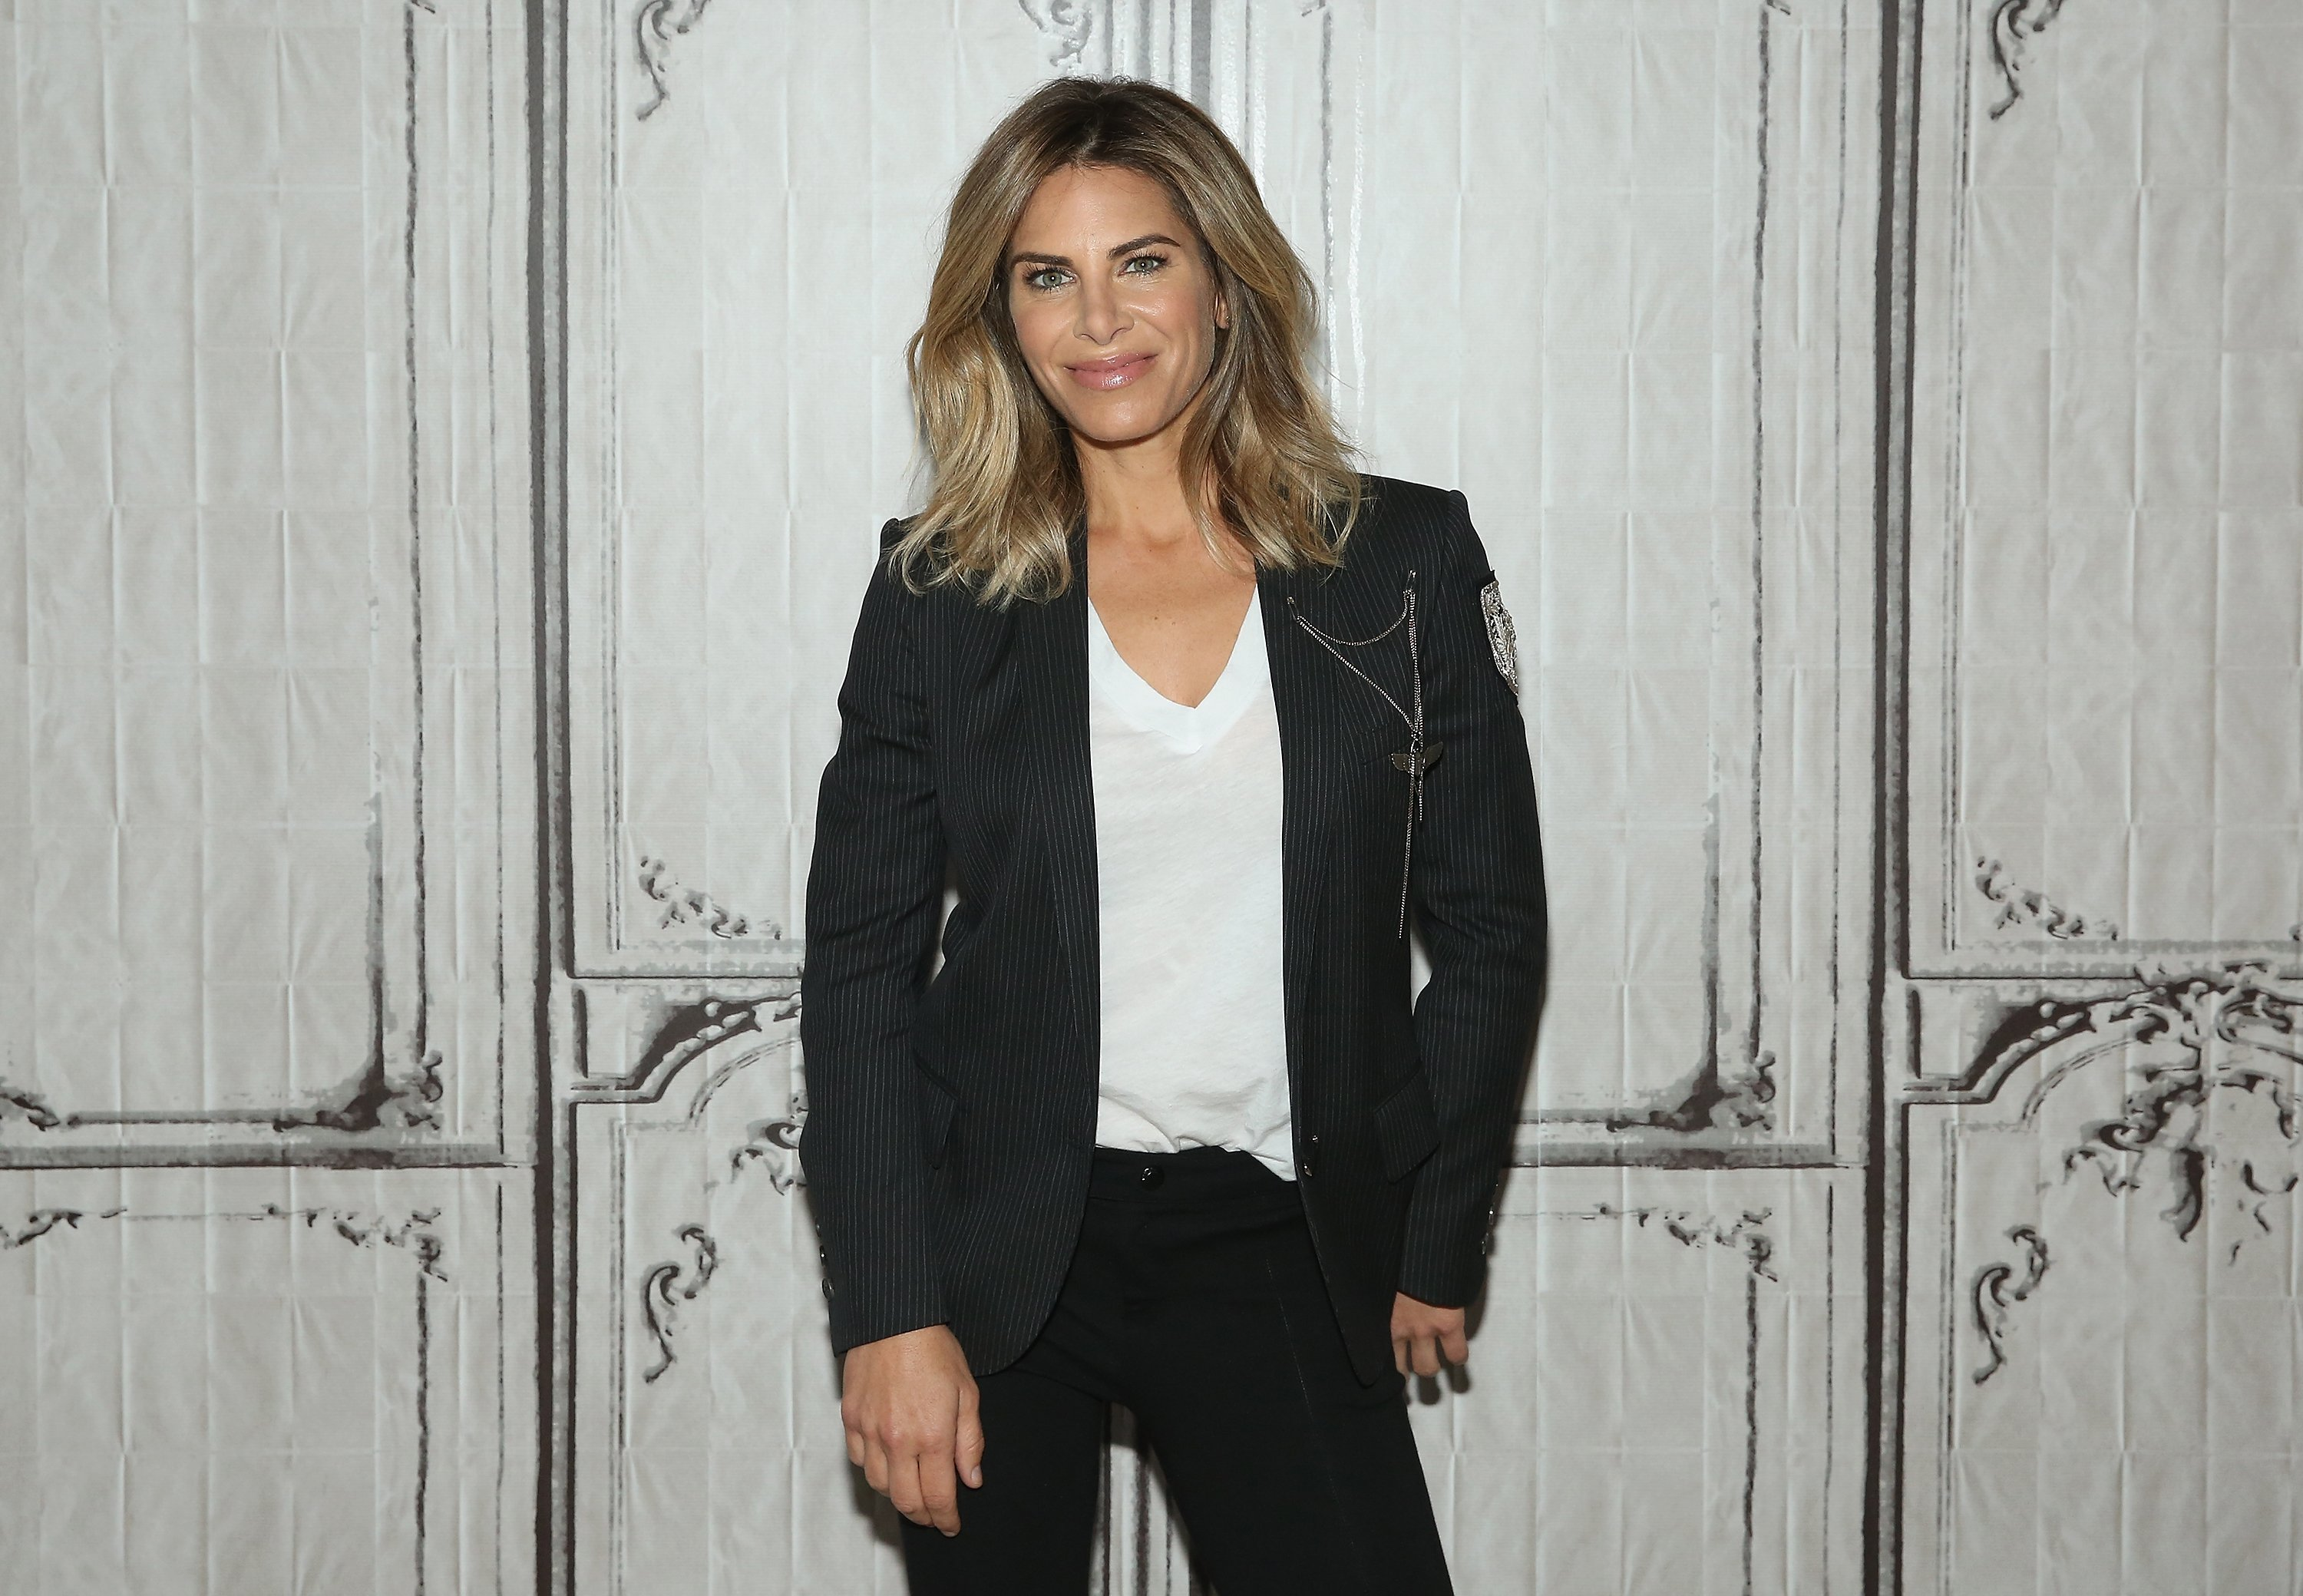 Jillian Michaels visits AOL Studios for AOL Build Presents Jillian Michaels in New York on October 19, 2015, in New York City.   Source: Getty Images.